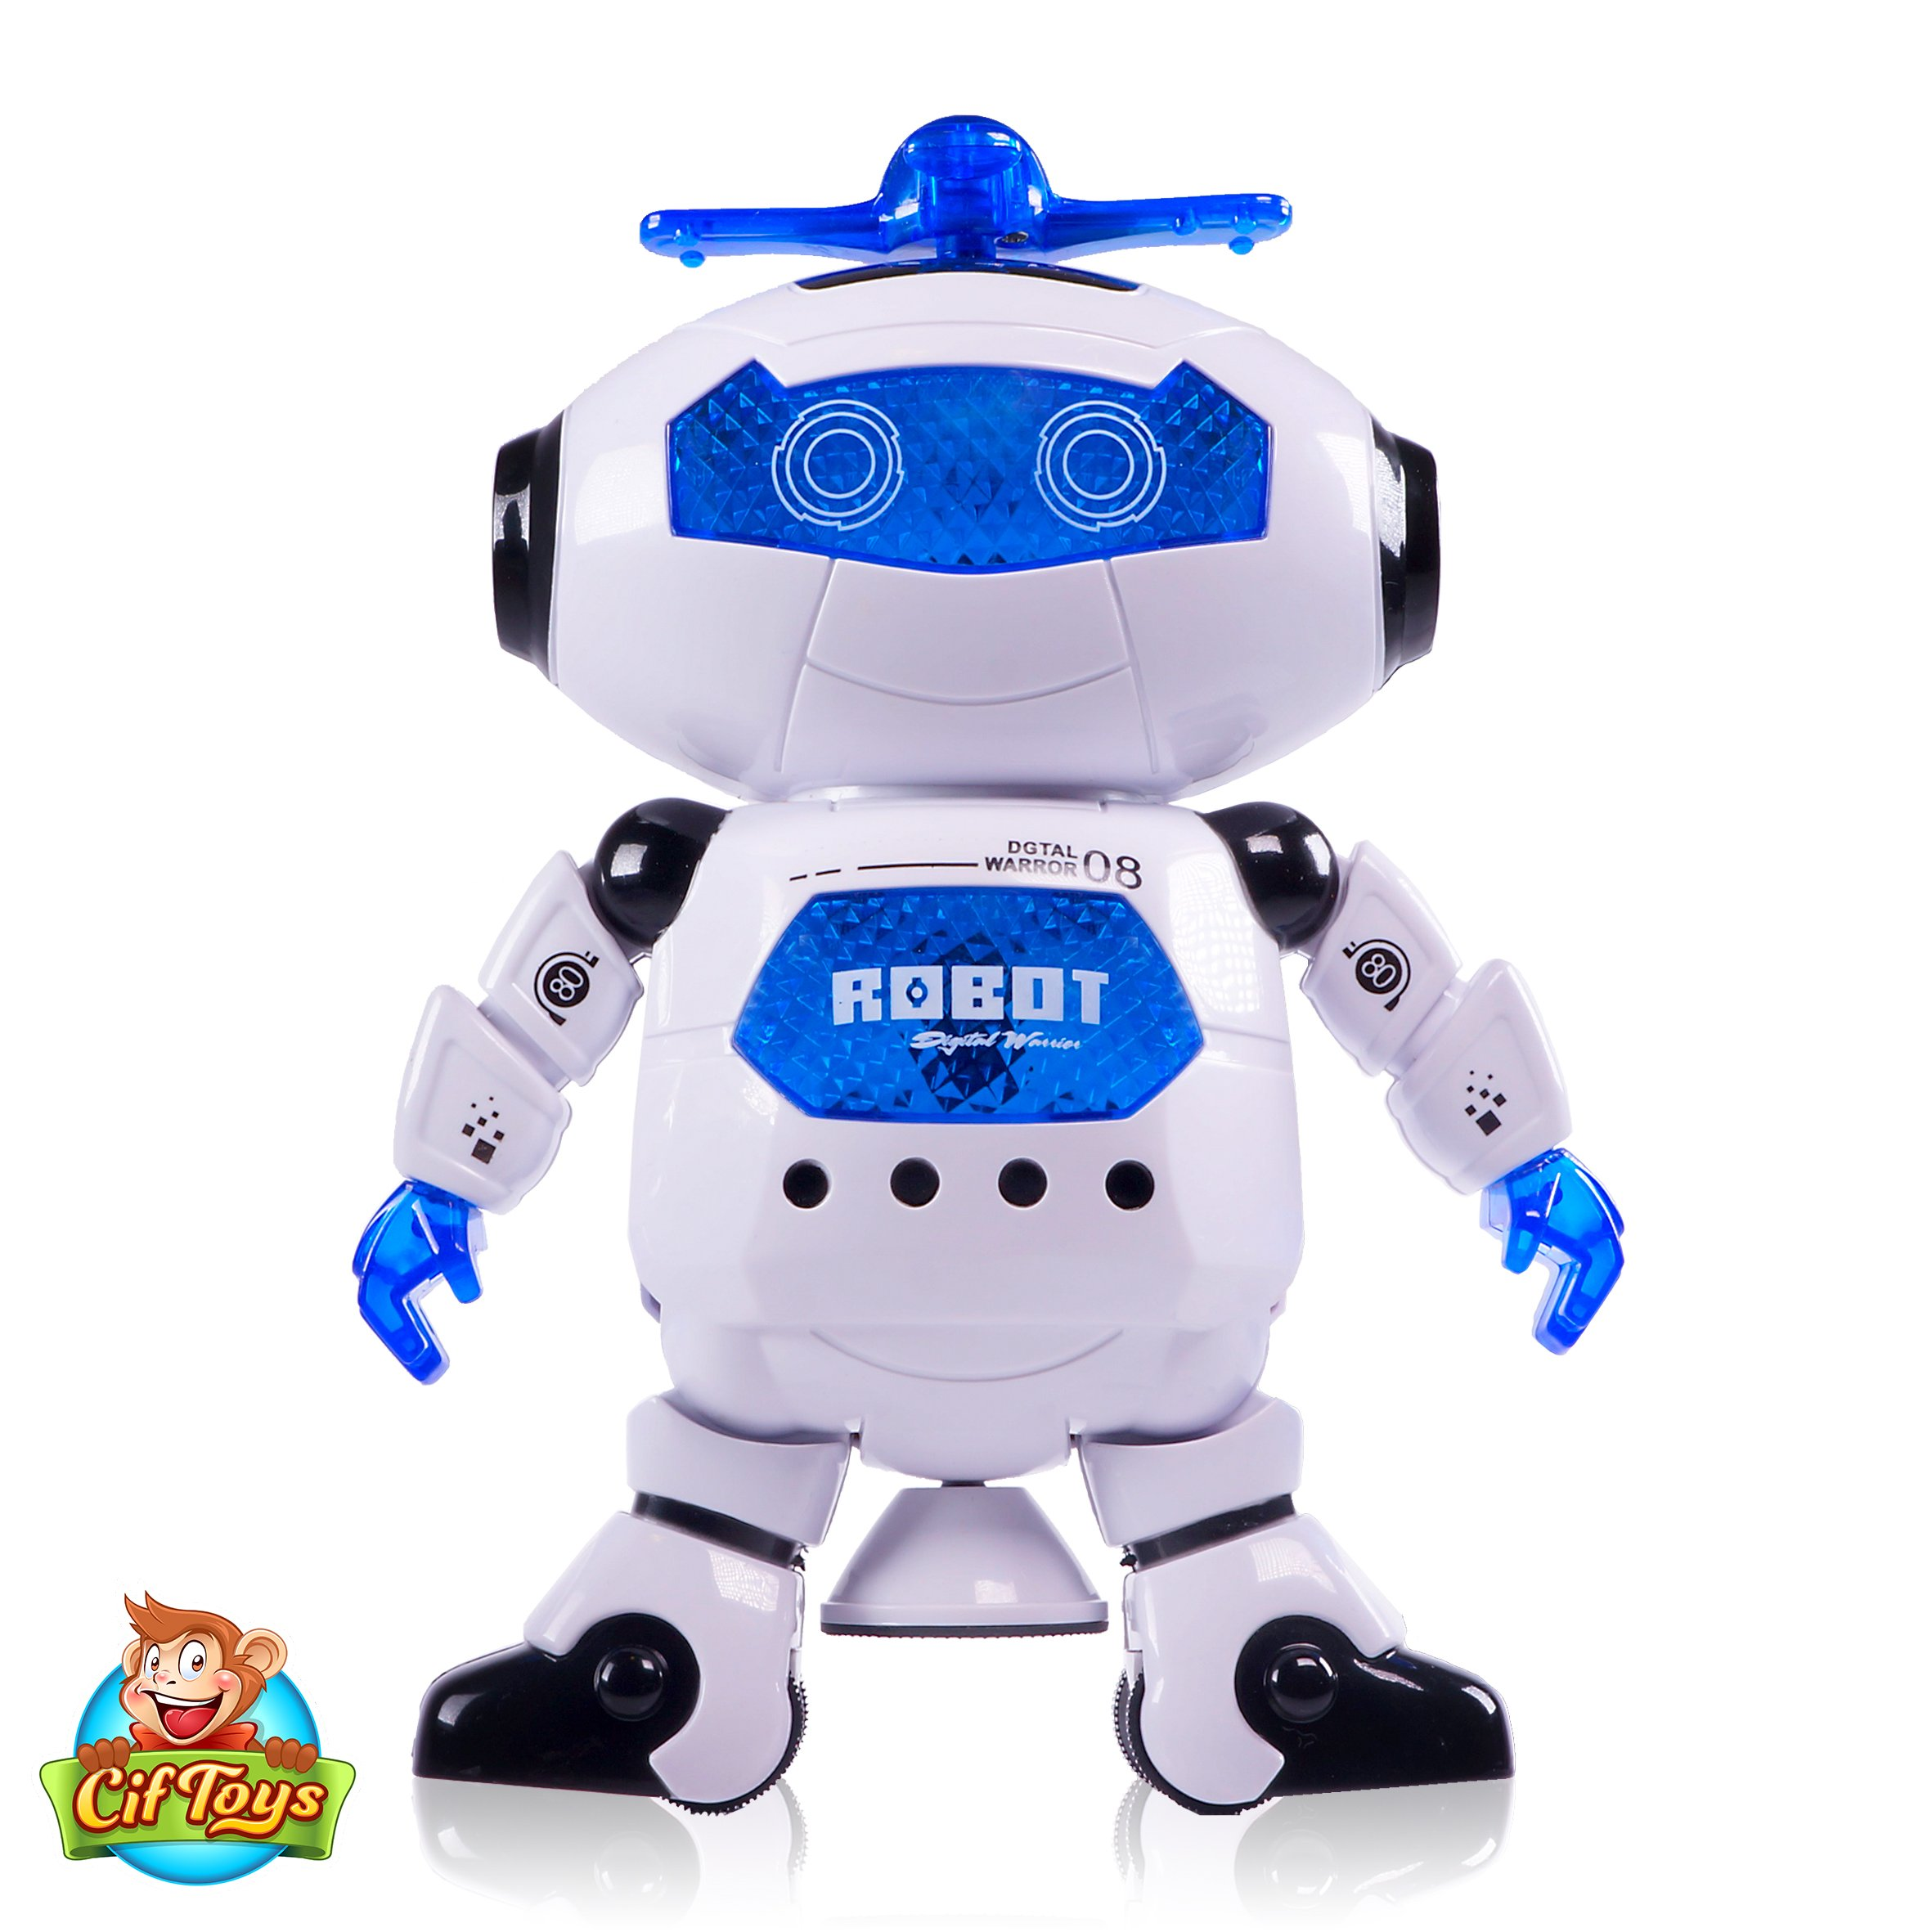 Boys Toys Electronic Walking Dancing Robot Toy - Toddler Toys - Best Gift for Boys and Girls 3 years old by CifToys (Image #5)